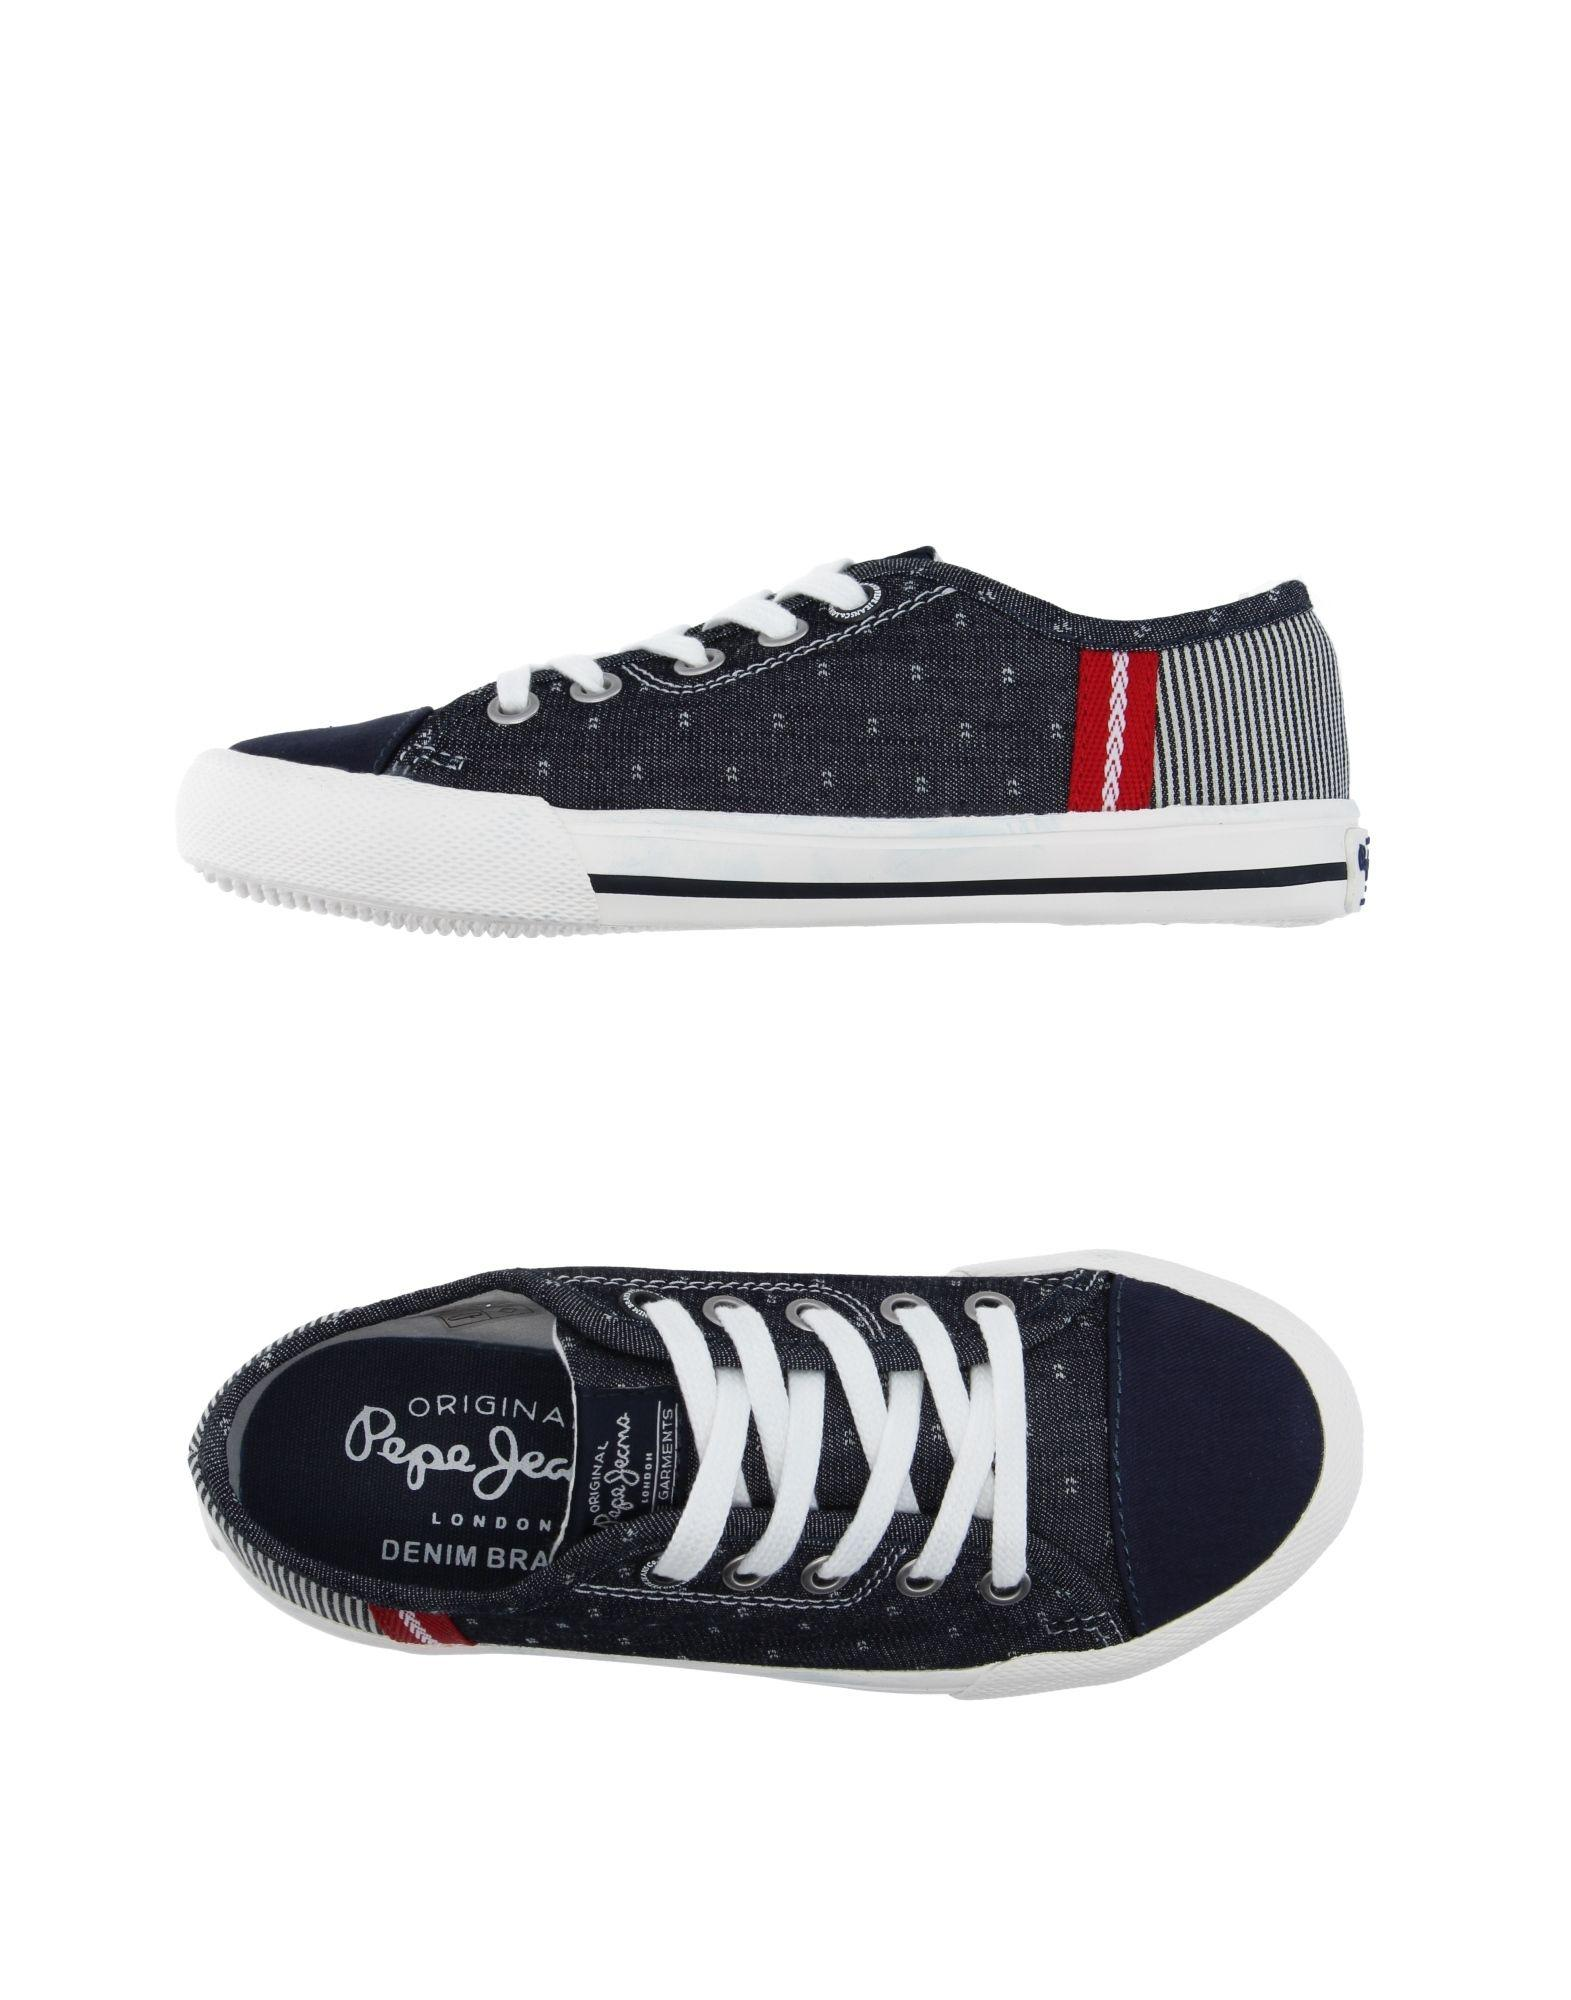 Pepe Jeans Bas-tops Et Baskets i9y8RDaSTs